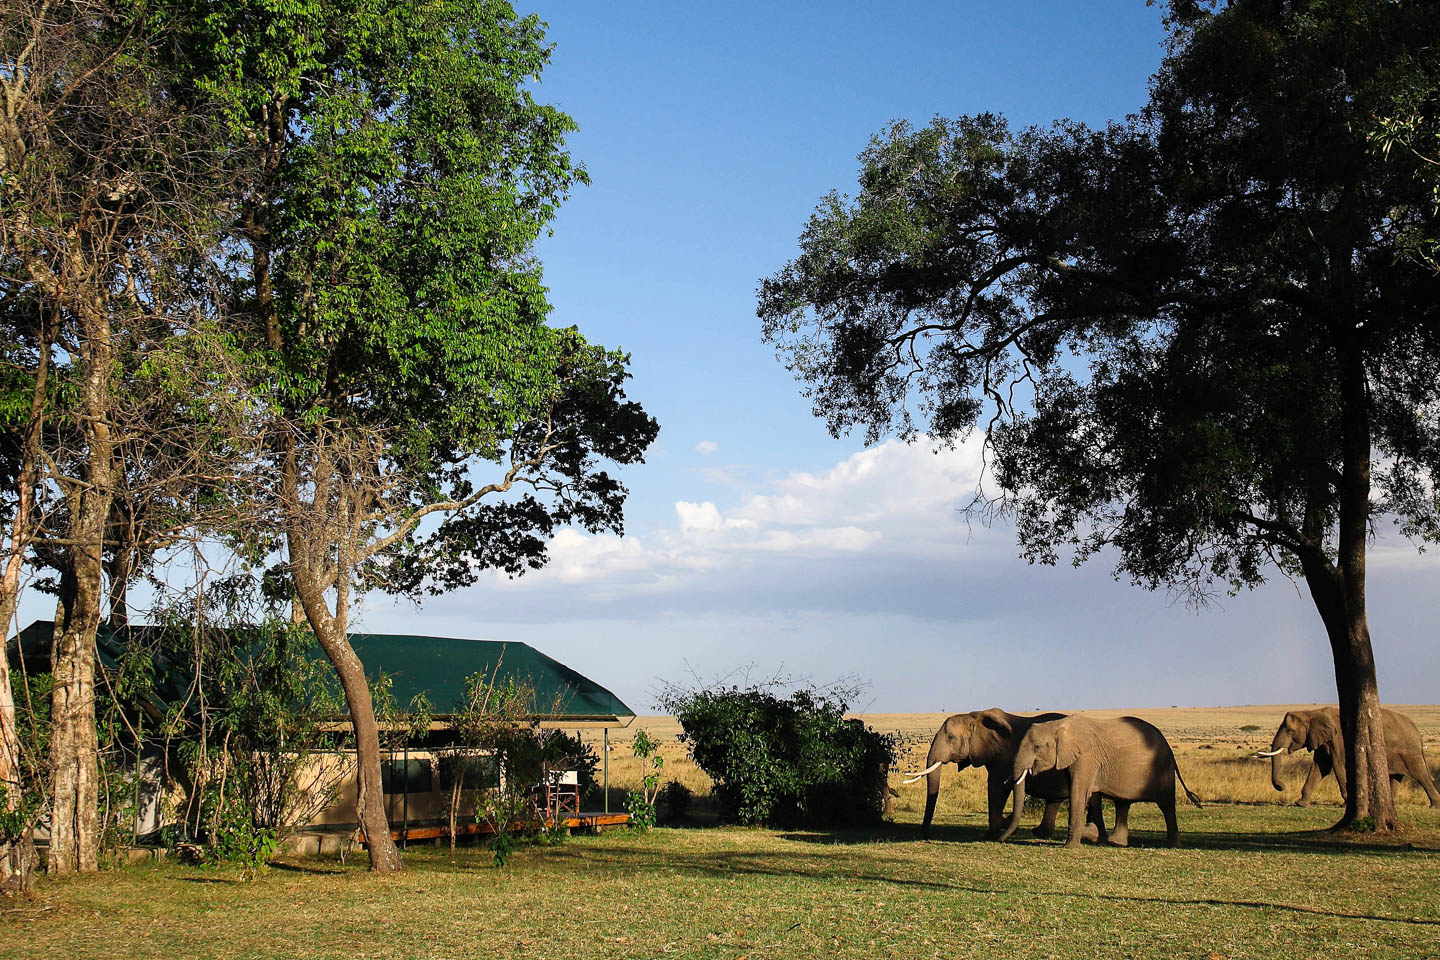 serengeti safari camps Great Wildebeest Migration governors camp exterior tented suite wildlife up close elephants